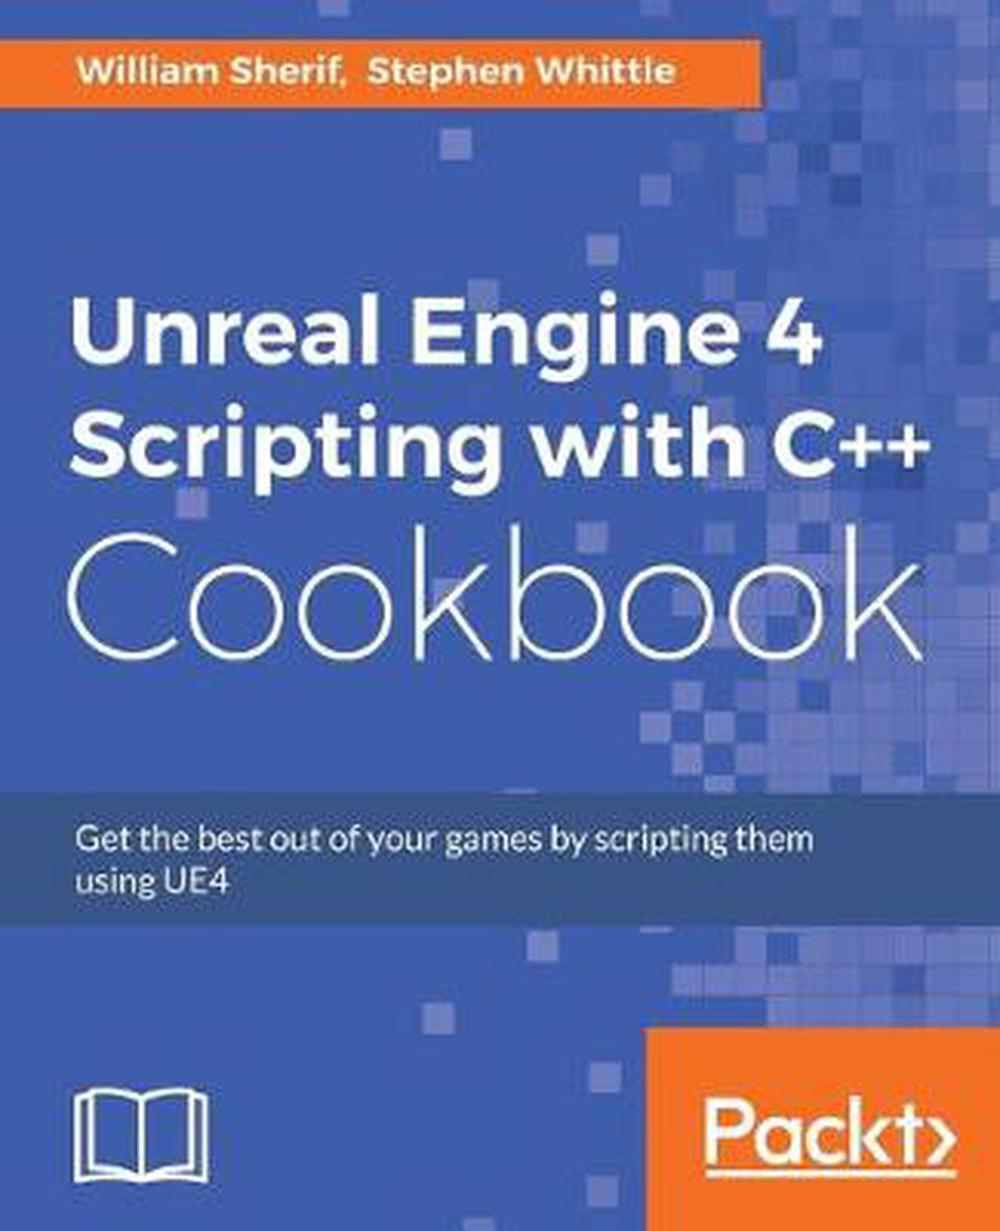 Details about Unreal Engine 4 Scripting with C++ Cookbook by William Sherif  (English) Paperbac